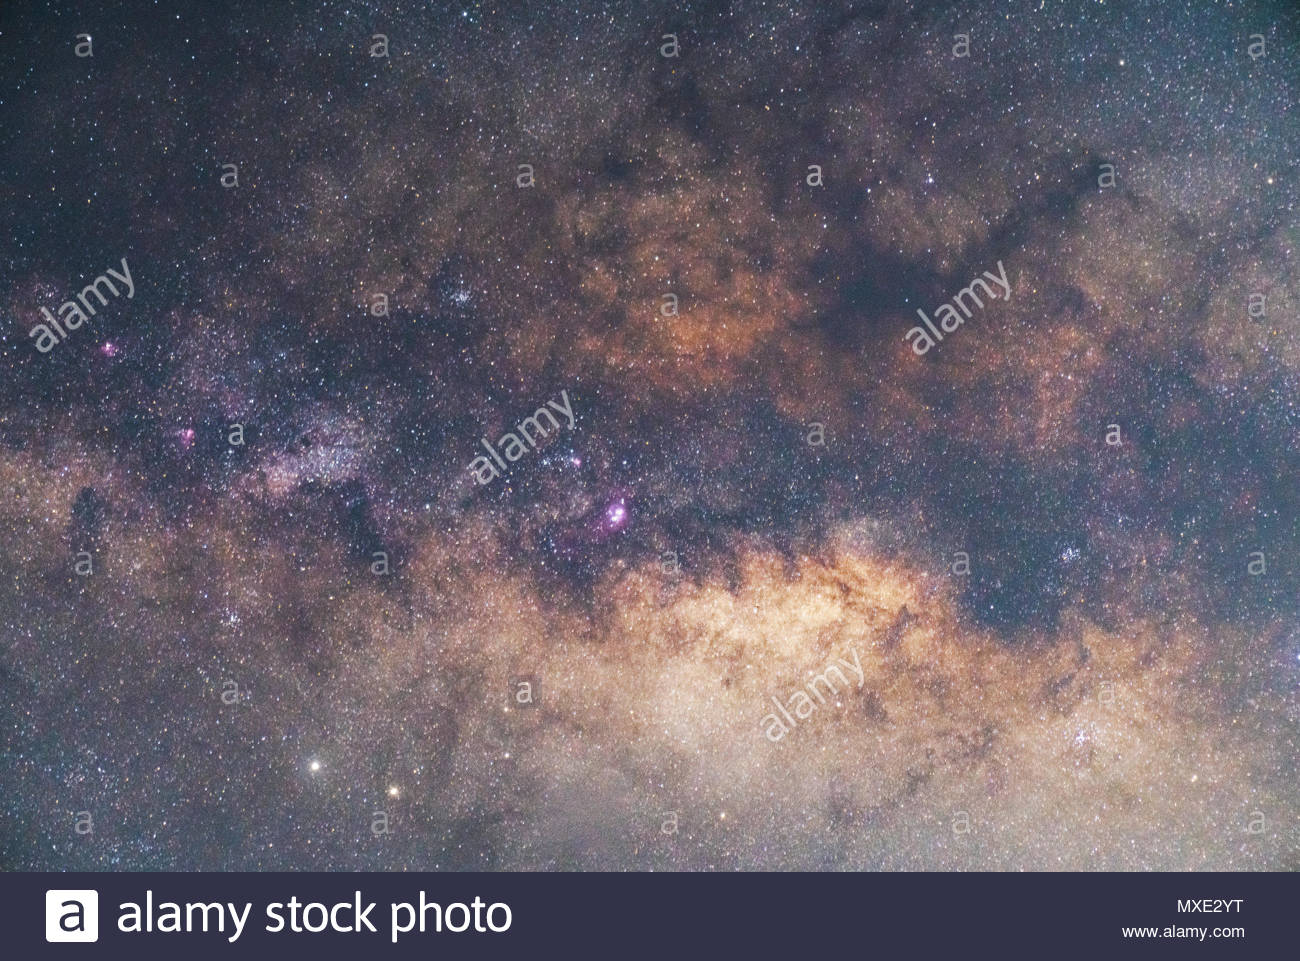 Close-up of Milky way galaxy with stars and space dust in the universe, Long exposure photograph, with grain. - Stock Image